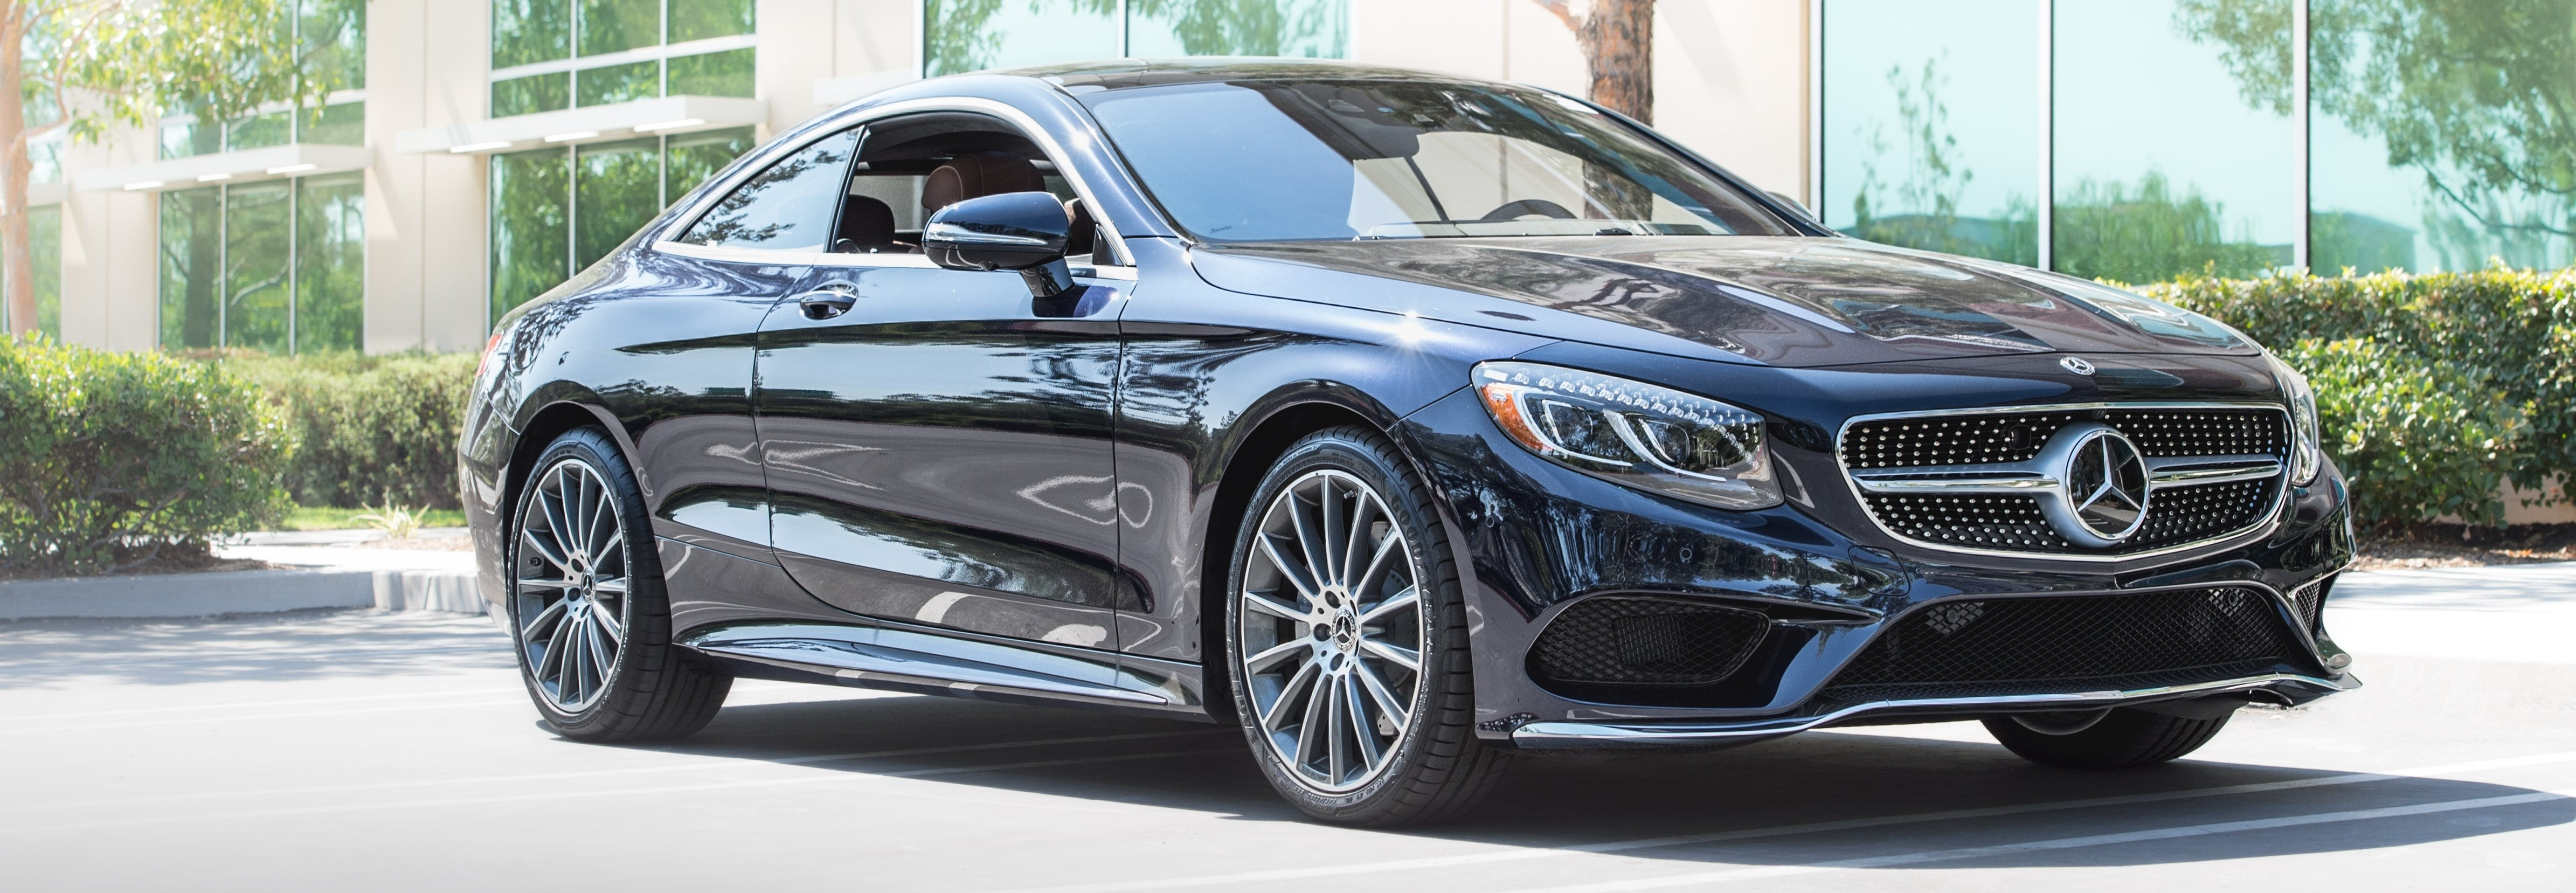 Preferred owner benefit fletcher jones motorcars for Mercedes benz ontario dealers